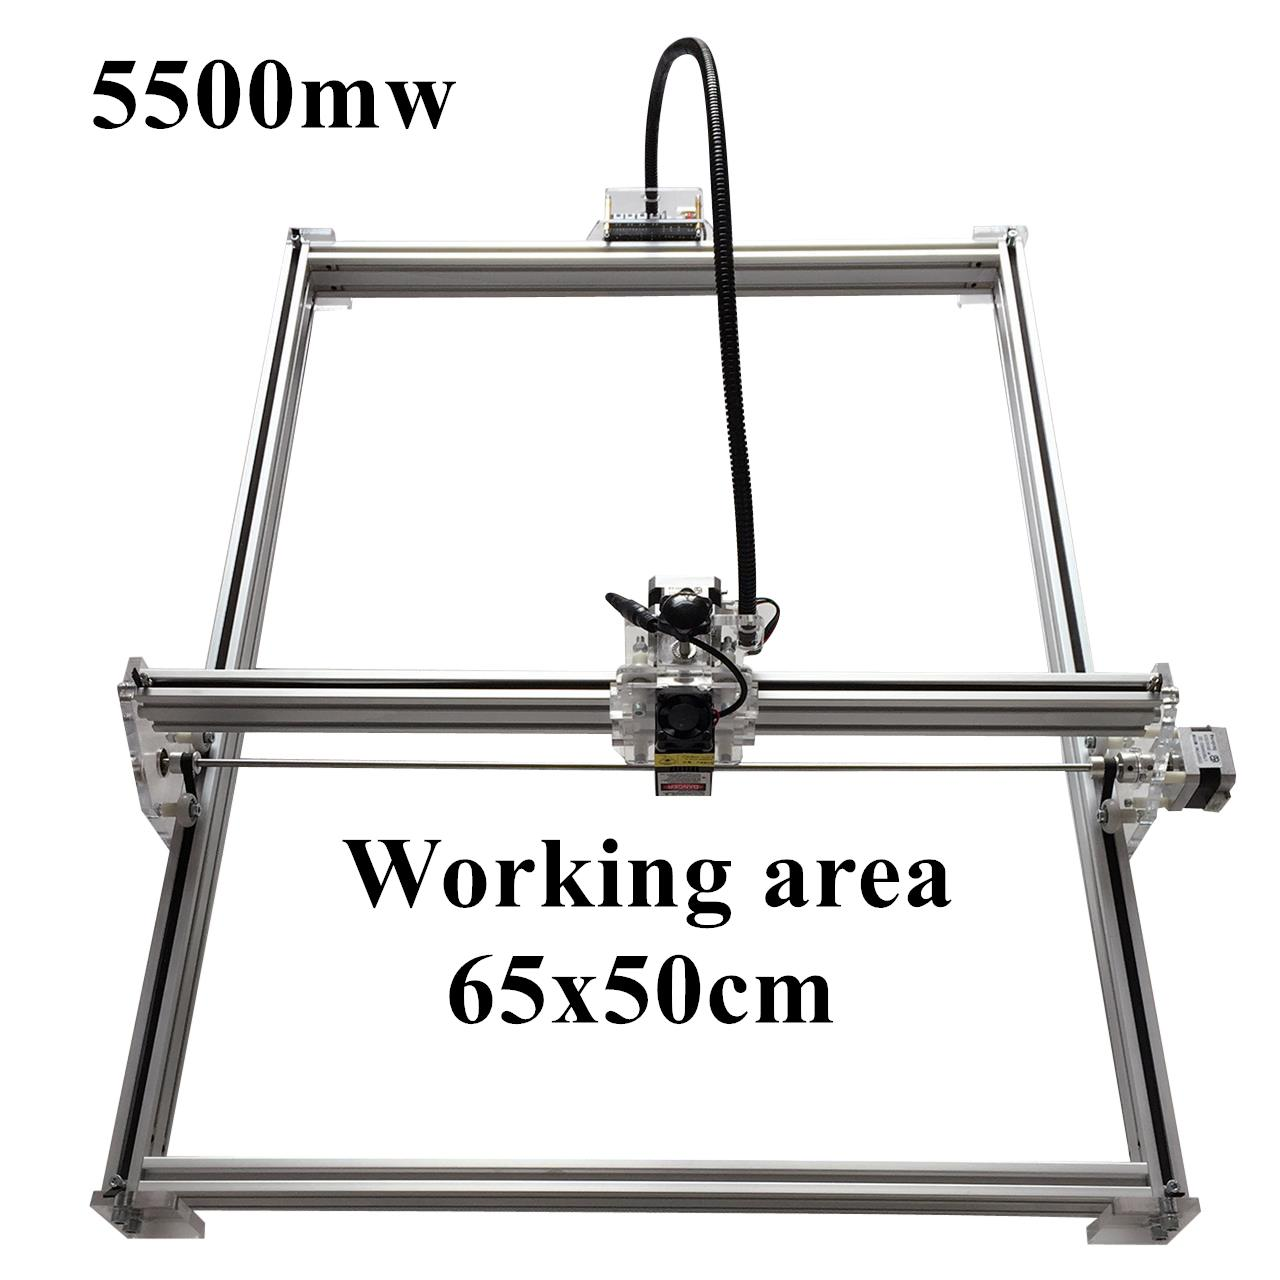 Mw Mini Desktop Diy Laser Engraving Engraver